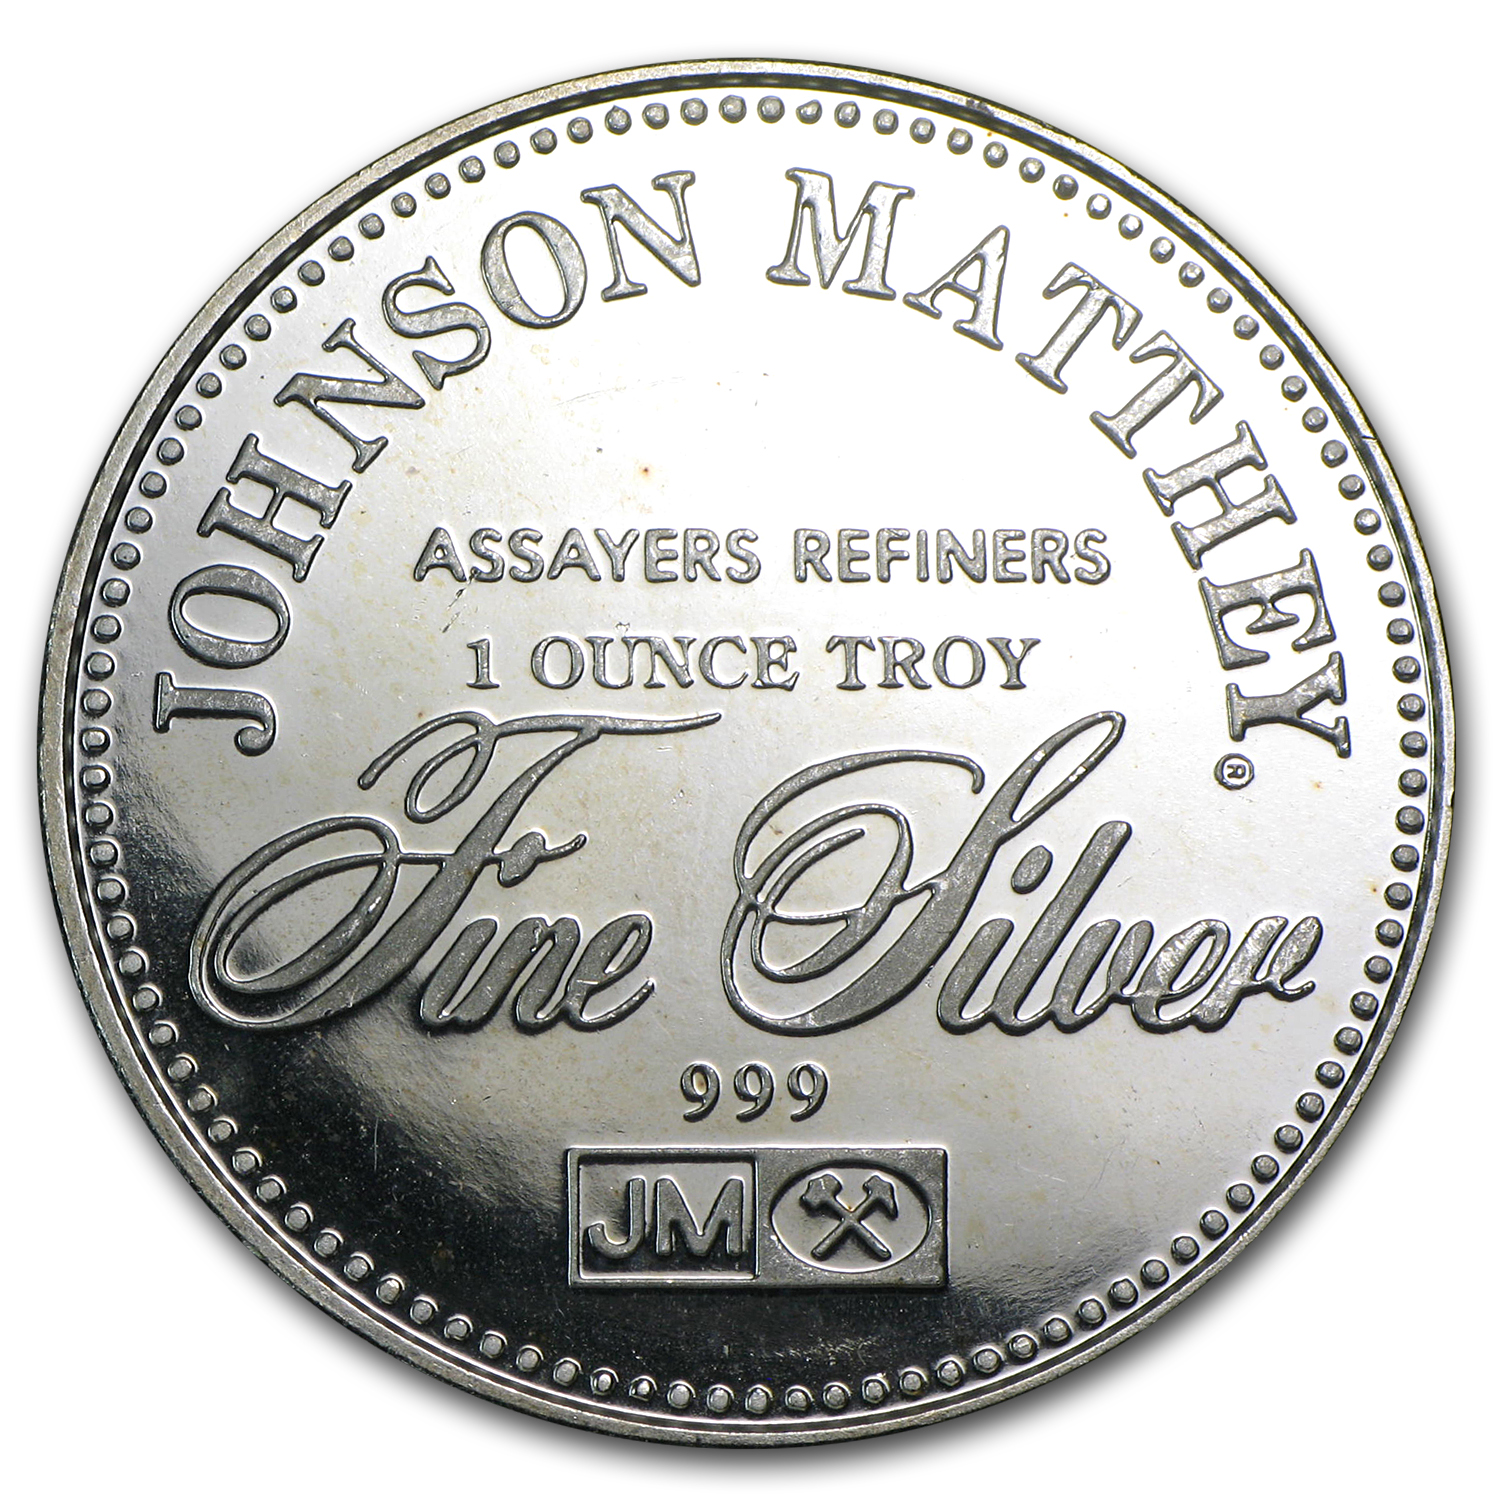 1 oz Silver Round - Johnson Matthey (Right to Counsel)